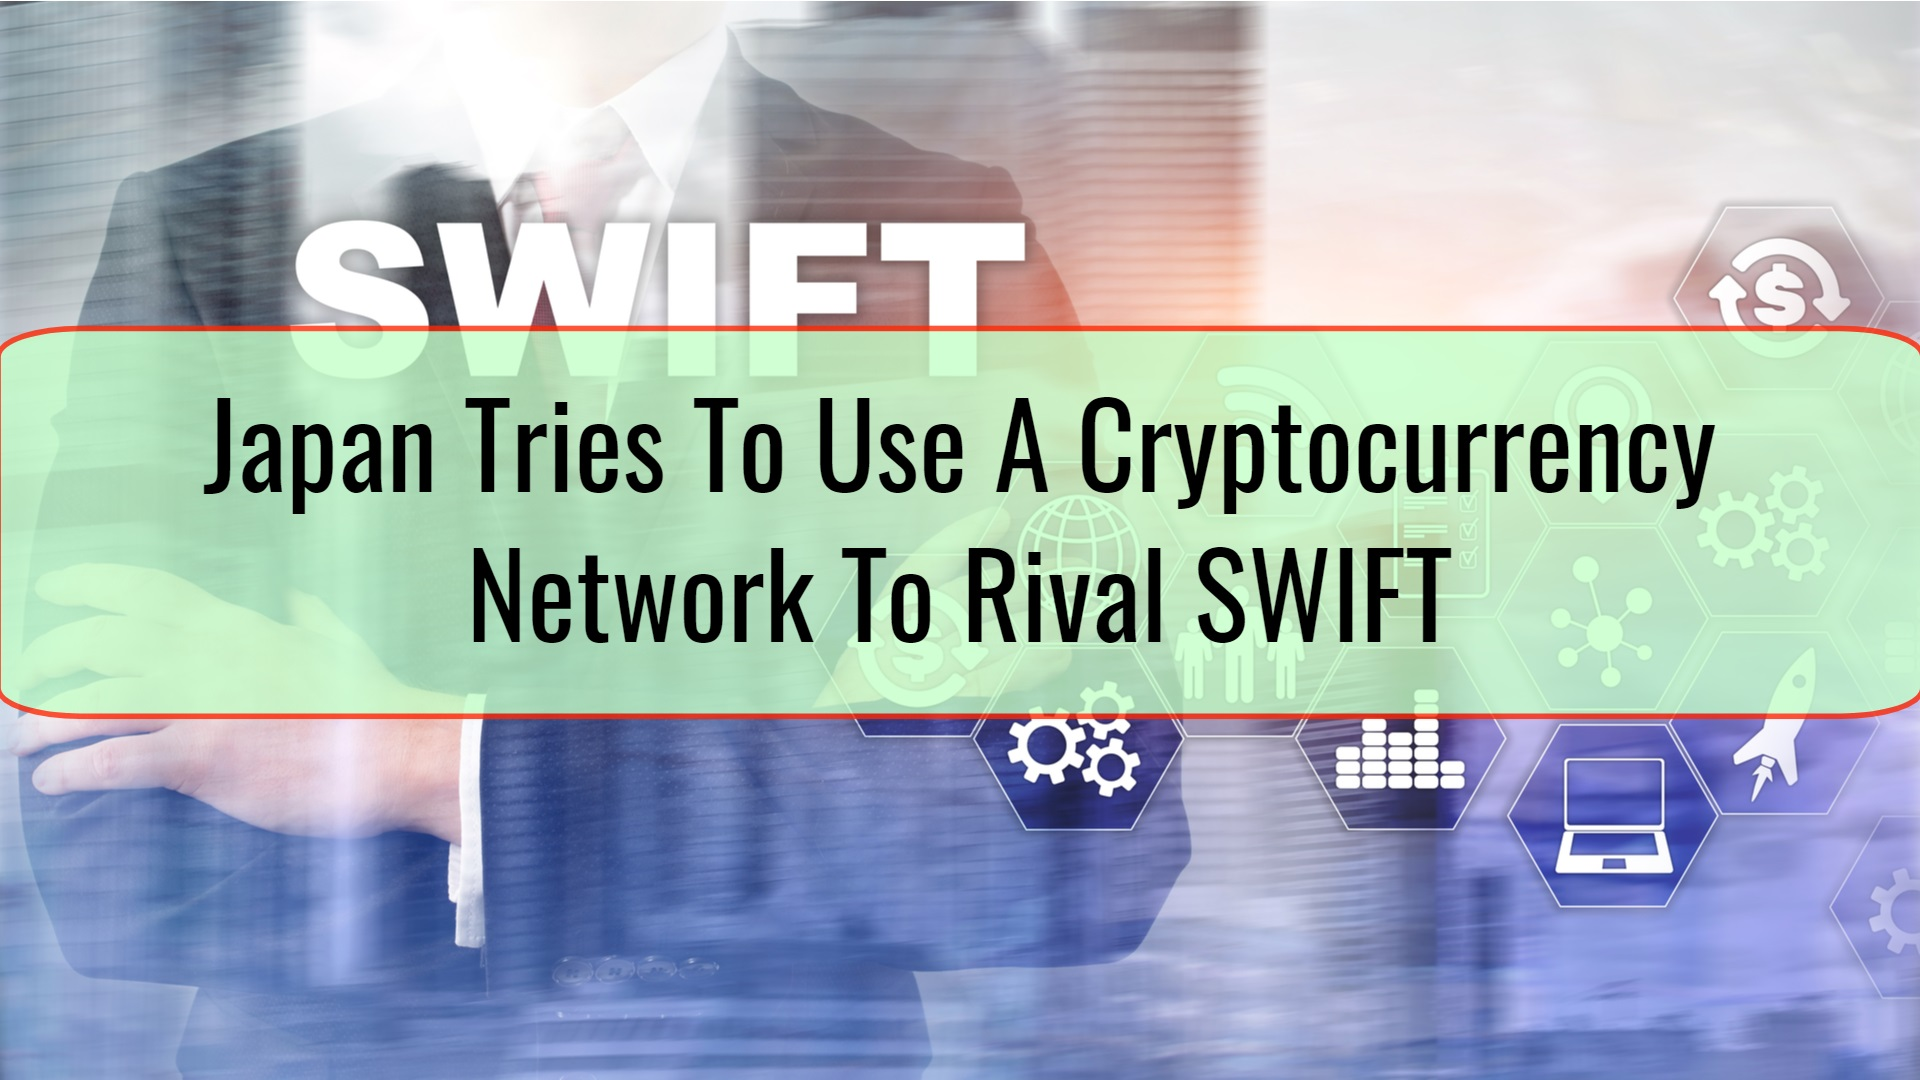 Japan Tries To Use A Cryptocurrency Network To Rival SWIFT